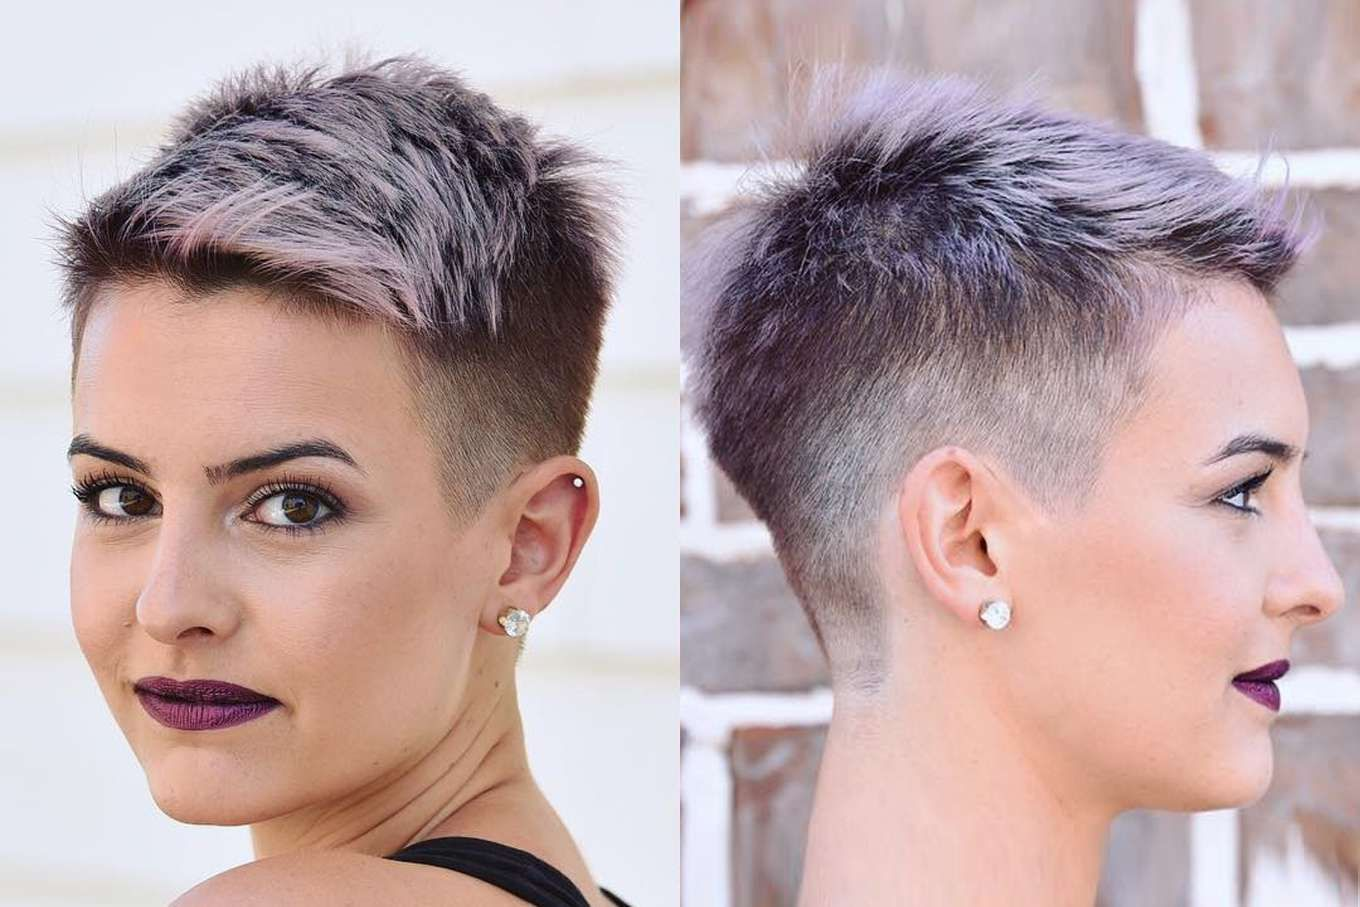 Lisa cimorelli short hairstyles picture gallery short hair